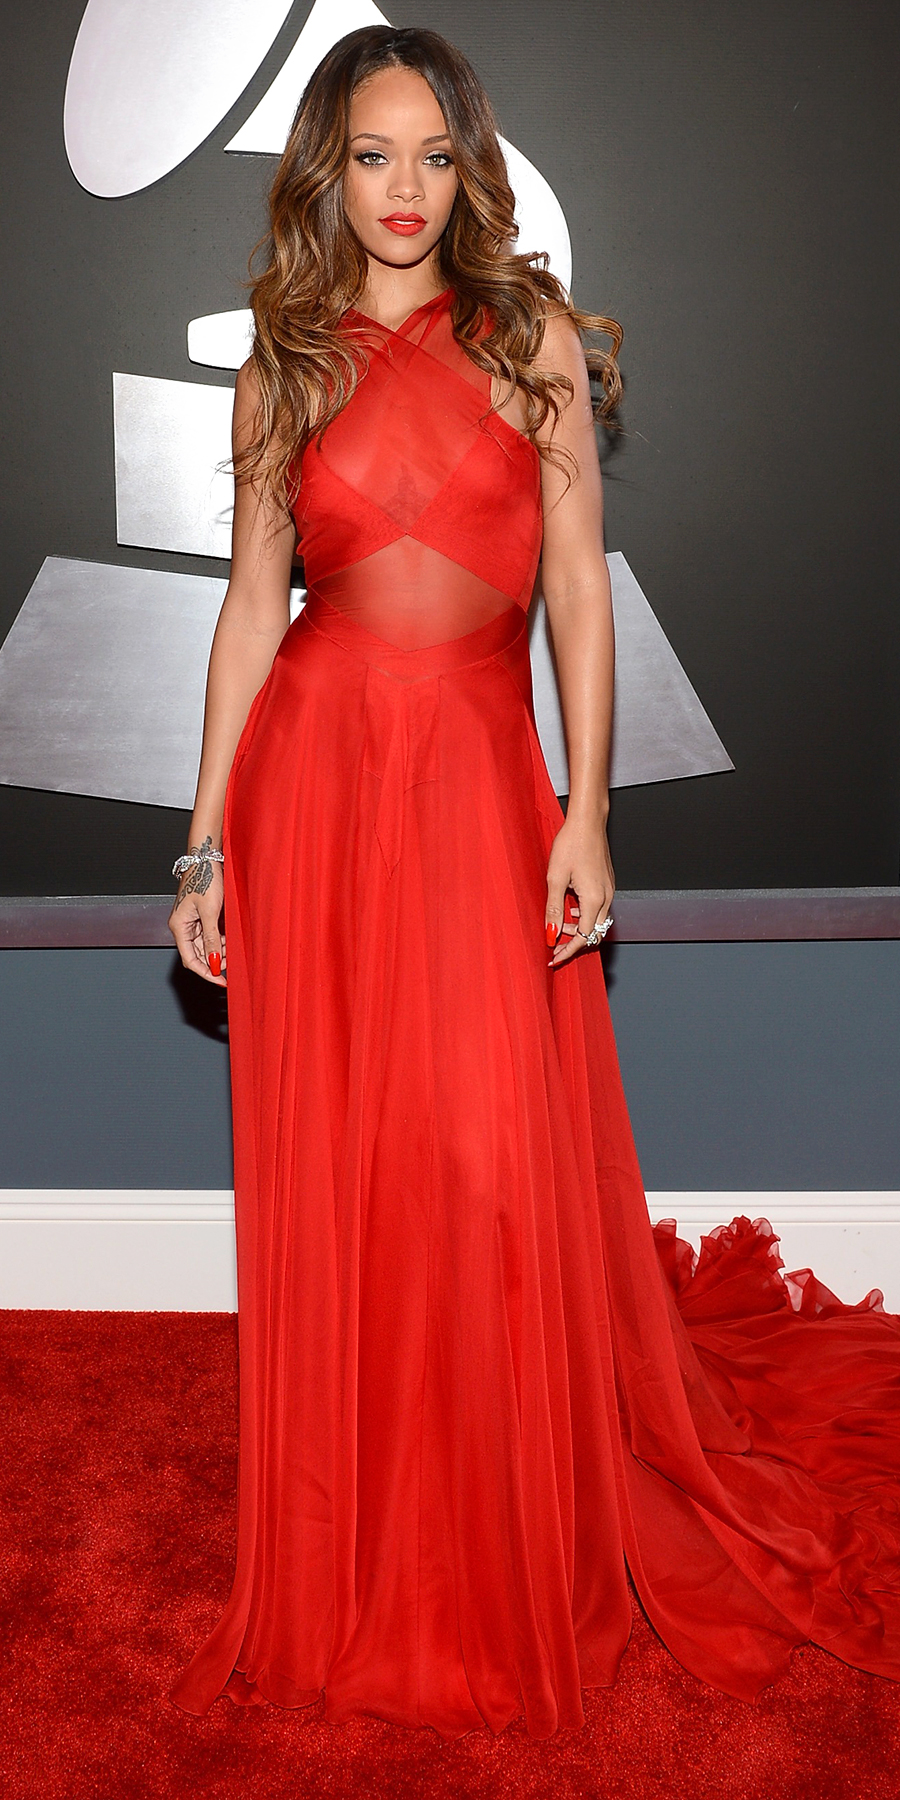 In AZZEDINE ALAÏA at the Grammy Awards in L.A. (2013)